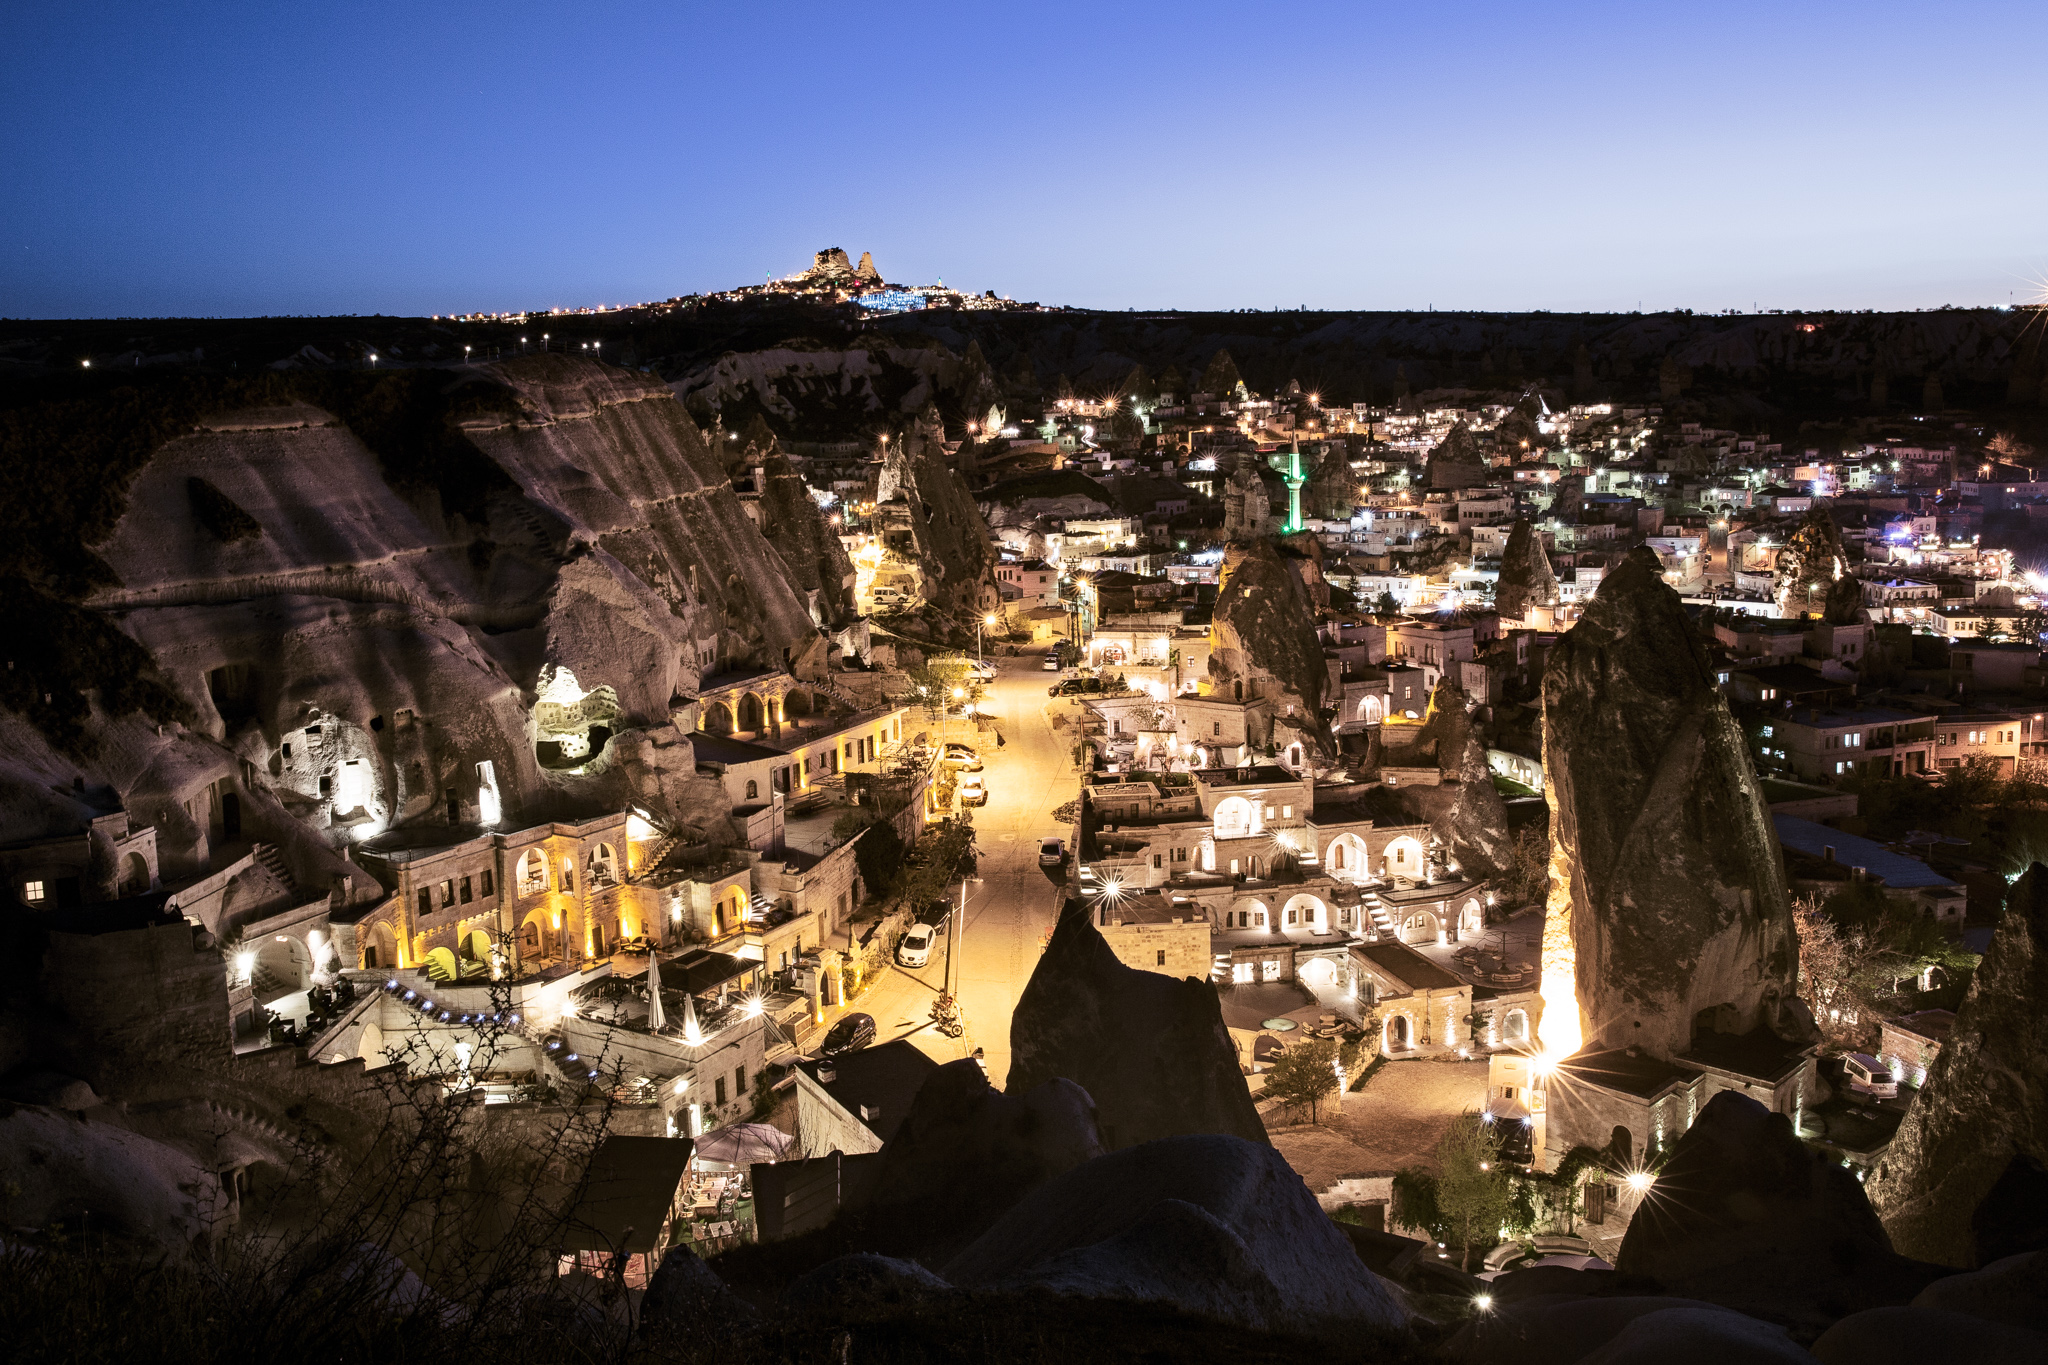 goreme_town-4870-townlights-from-viewpoint-nightshot.jpg